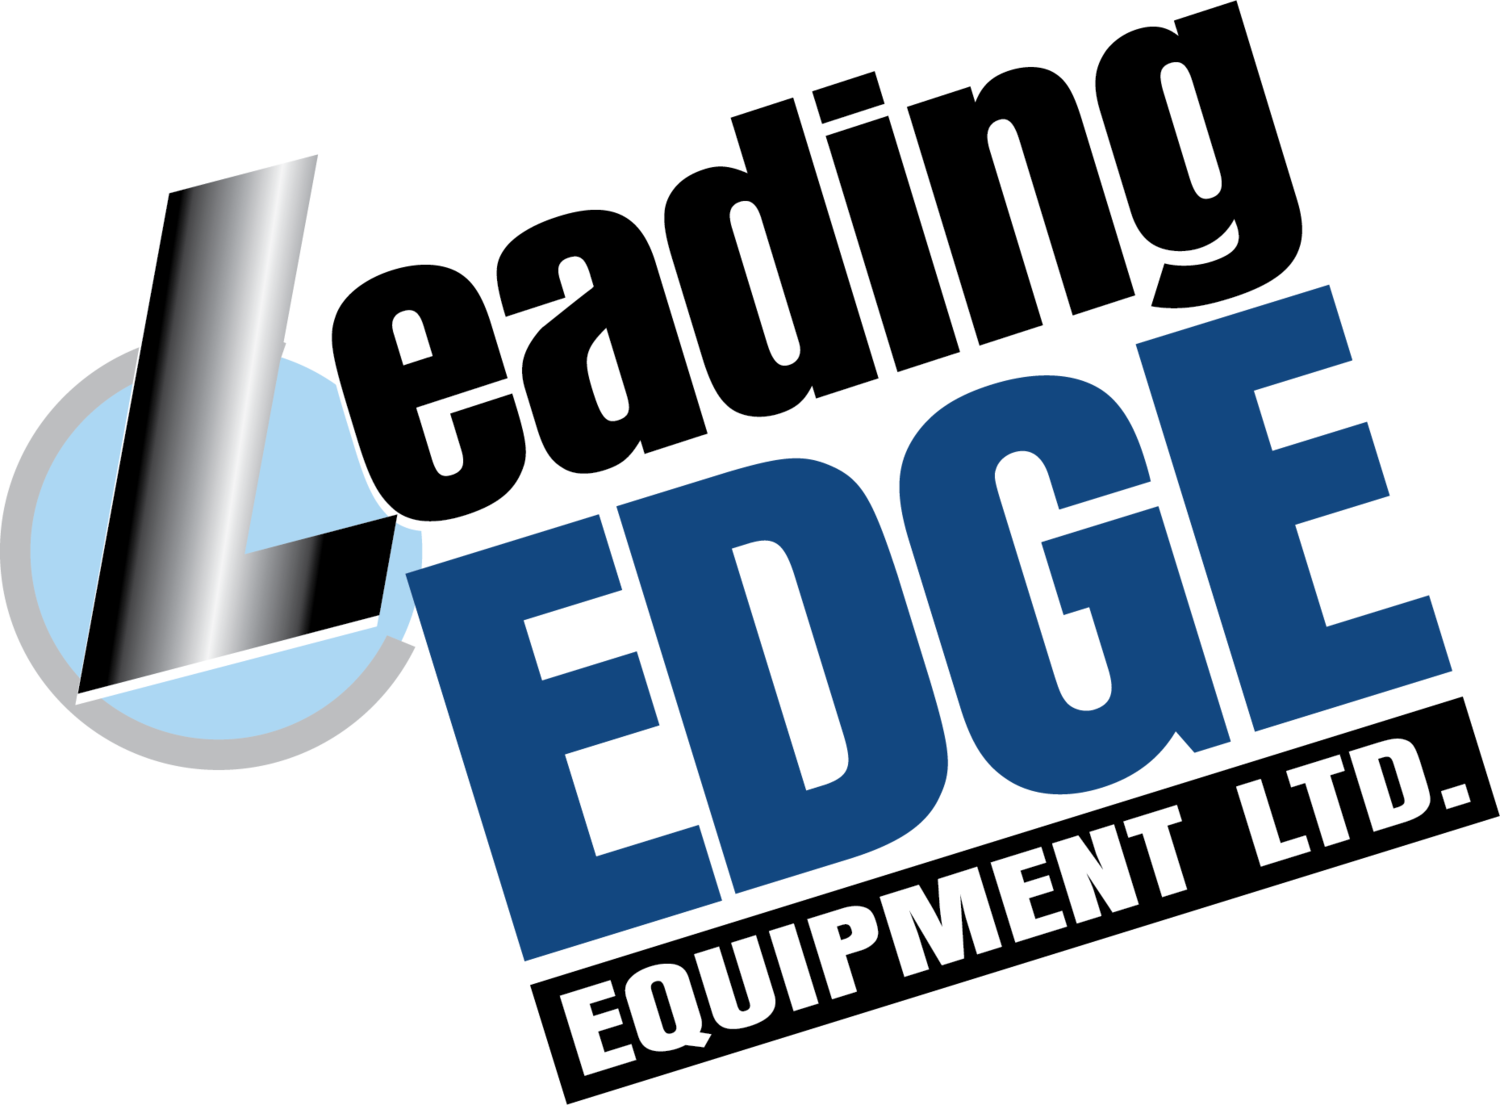 Leading Edge Equipment Ltd.